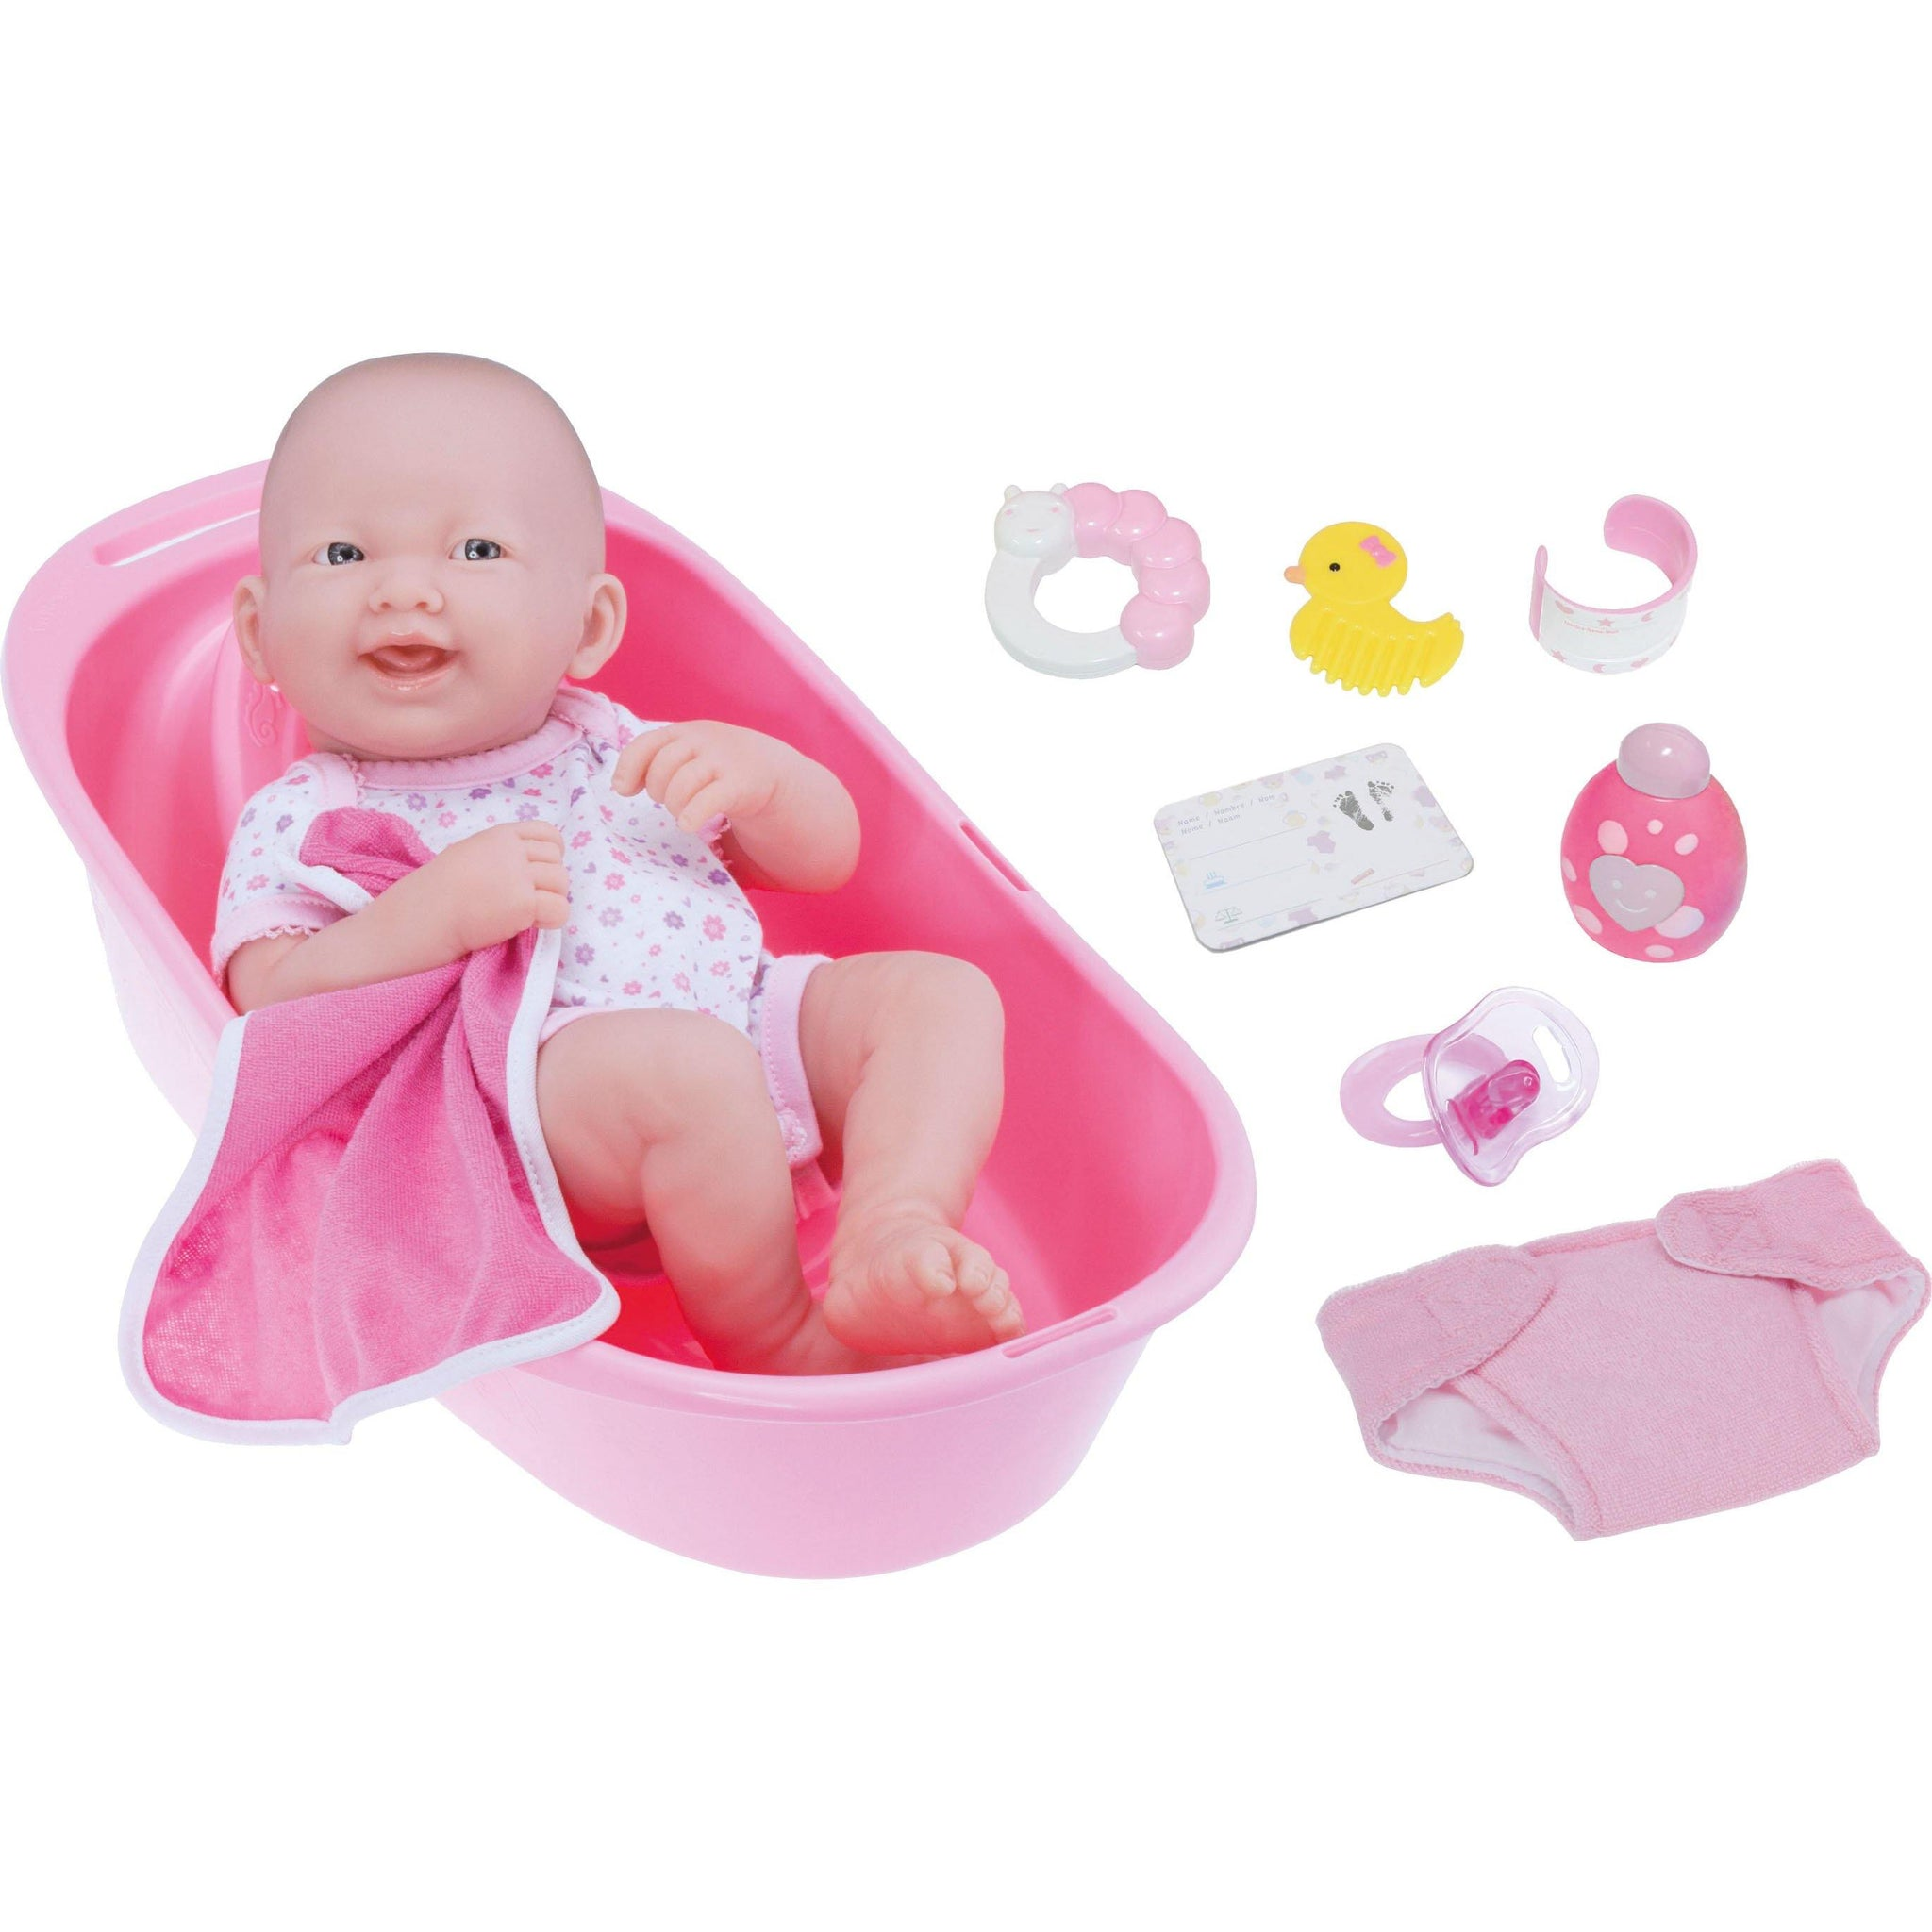 La Newborn 14 inches Deluxe Bath Time Fun Set